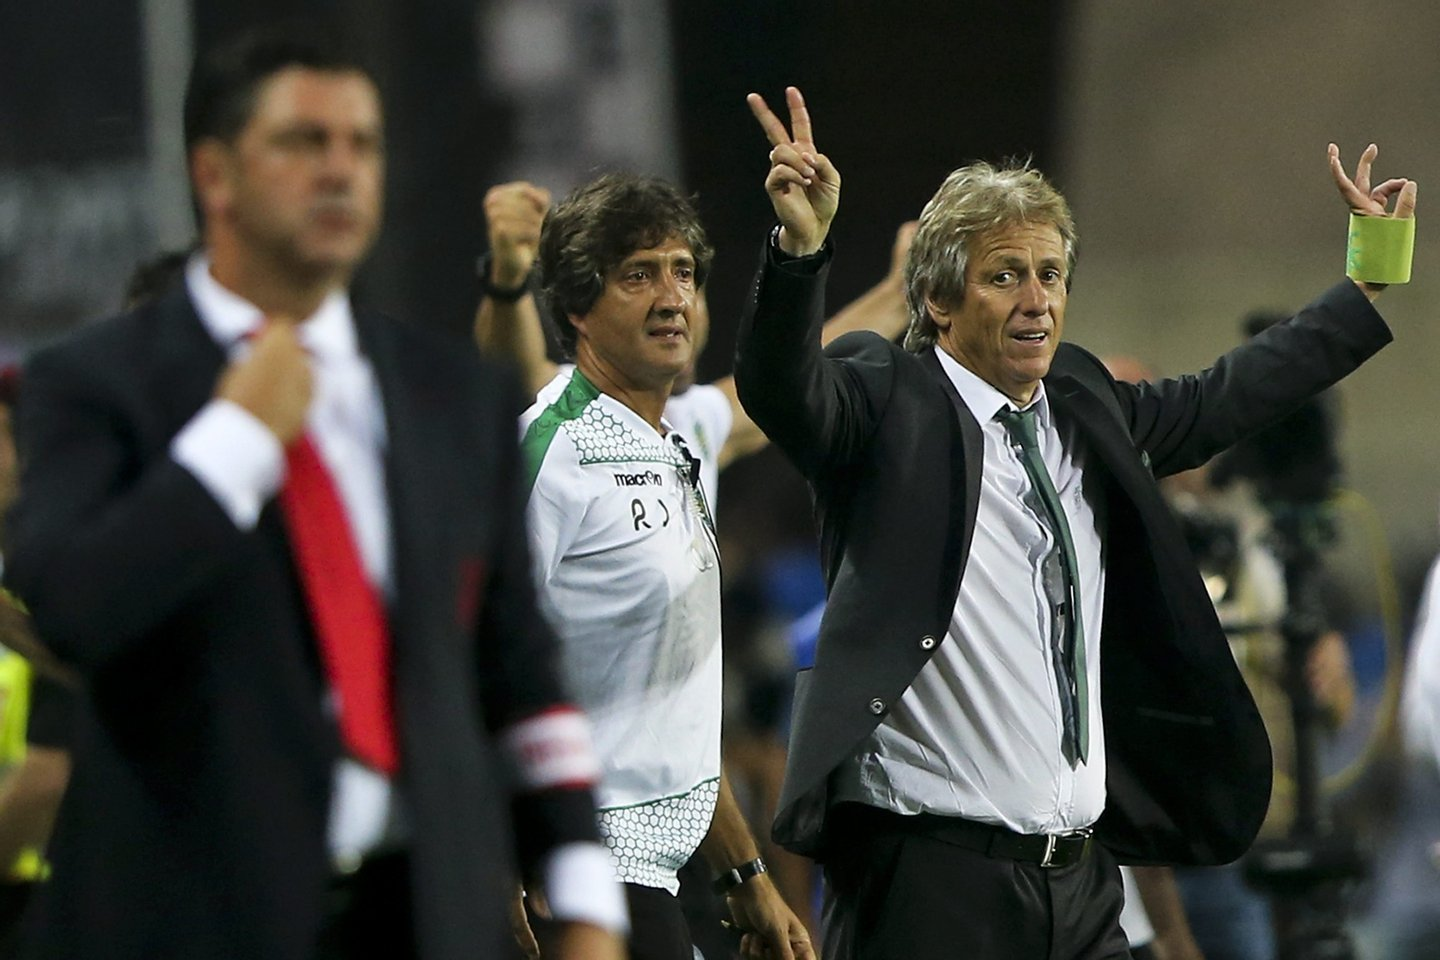 epa04878789 Sporting Clube de Portugal head coach Jorge Jesus reacts after winning the 'Candido de Oliveira' Supercup match against Sport Lisboa e Benfica held at Algarve Stadium in Faro, Portugal, 09 August 2015.  EPA/JOSÉ SENA GOULÃO